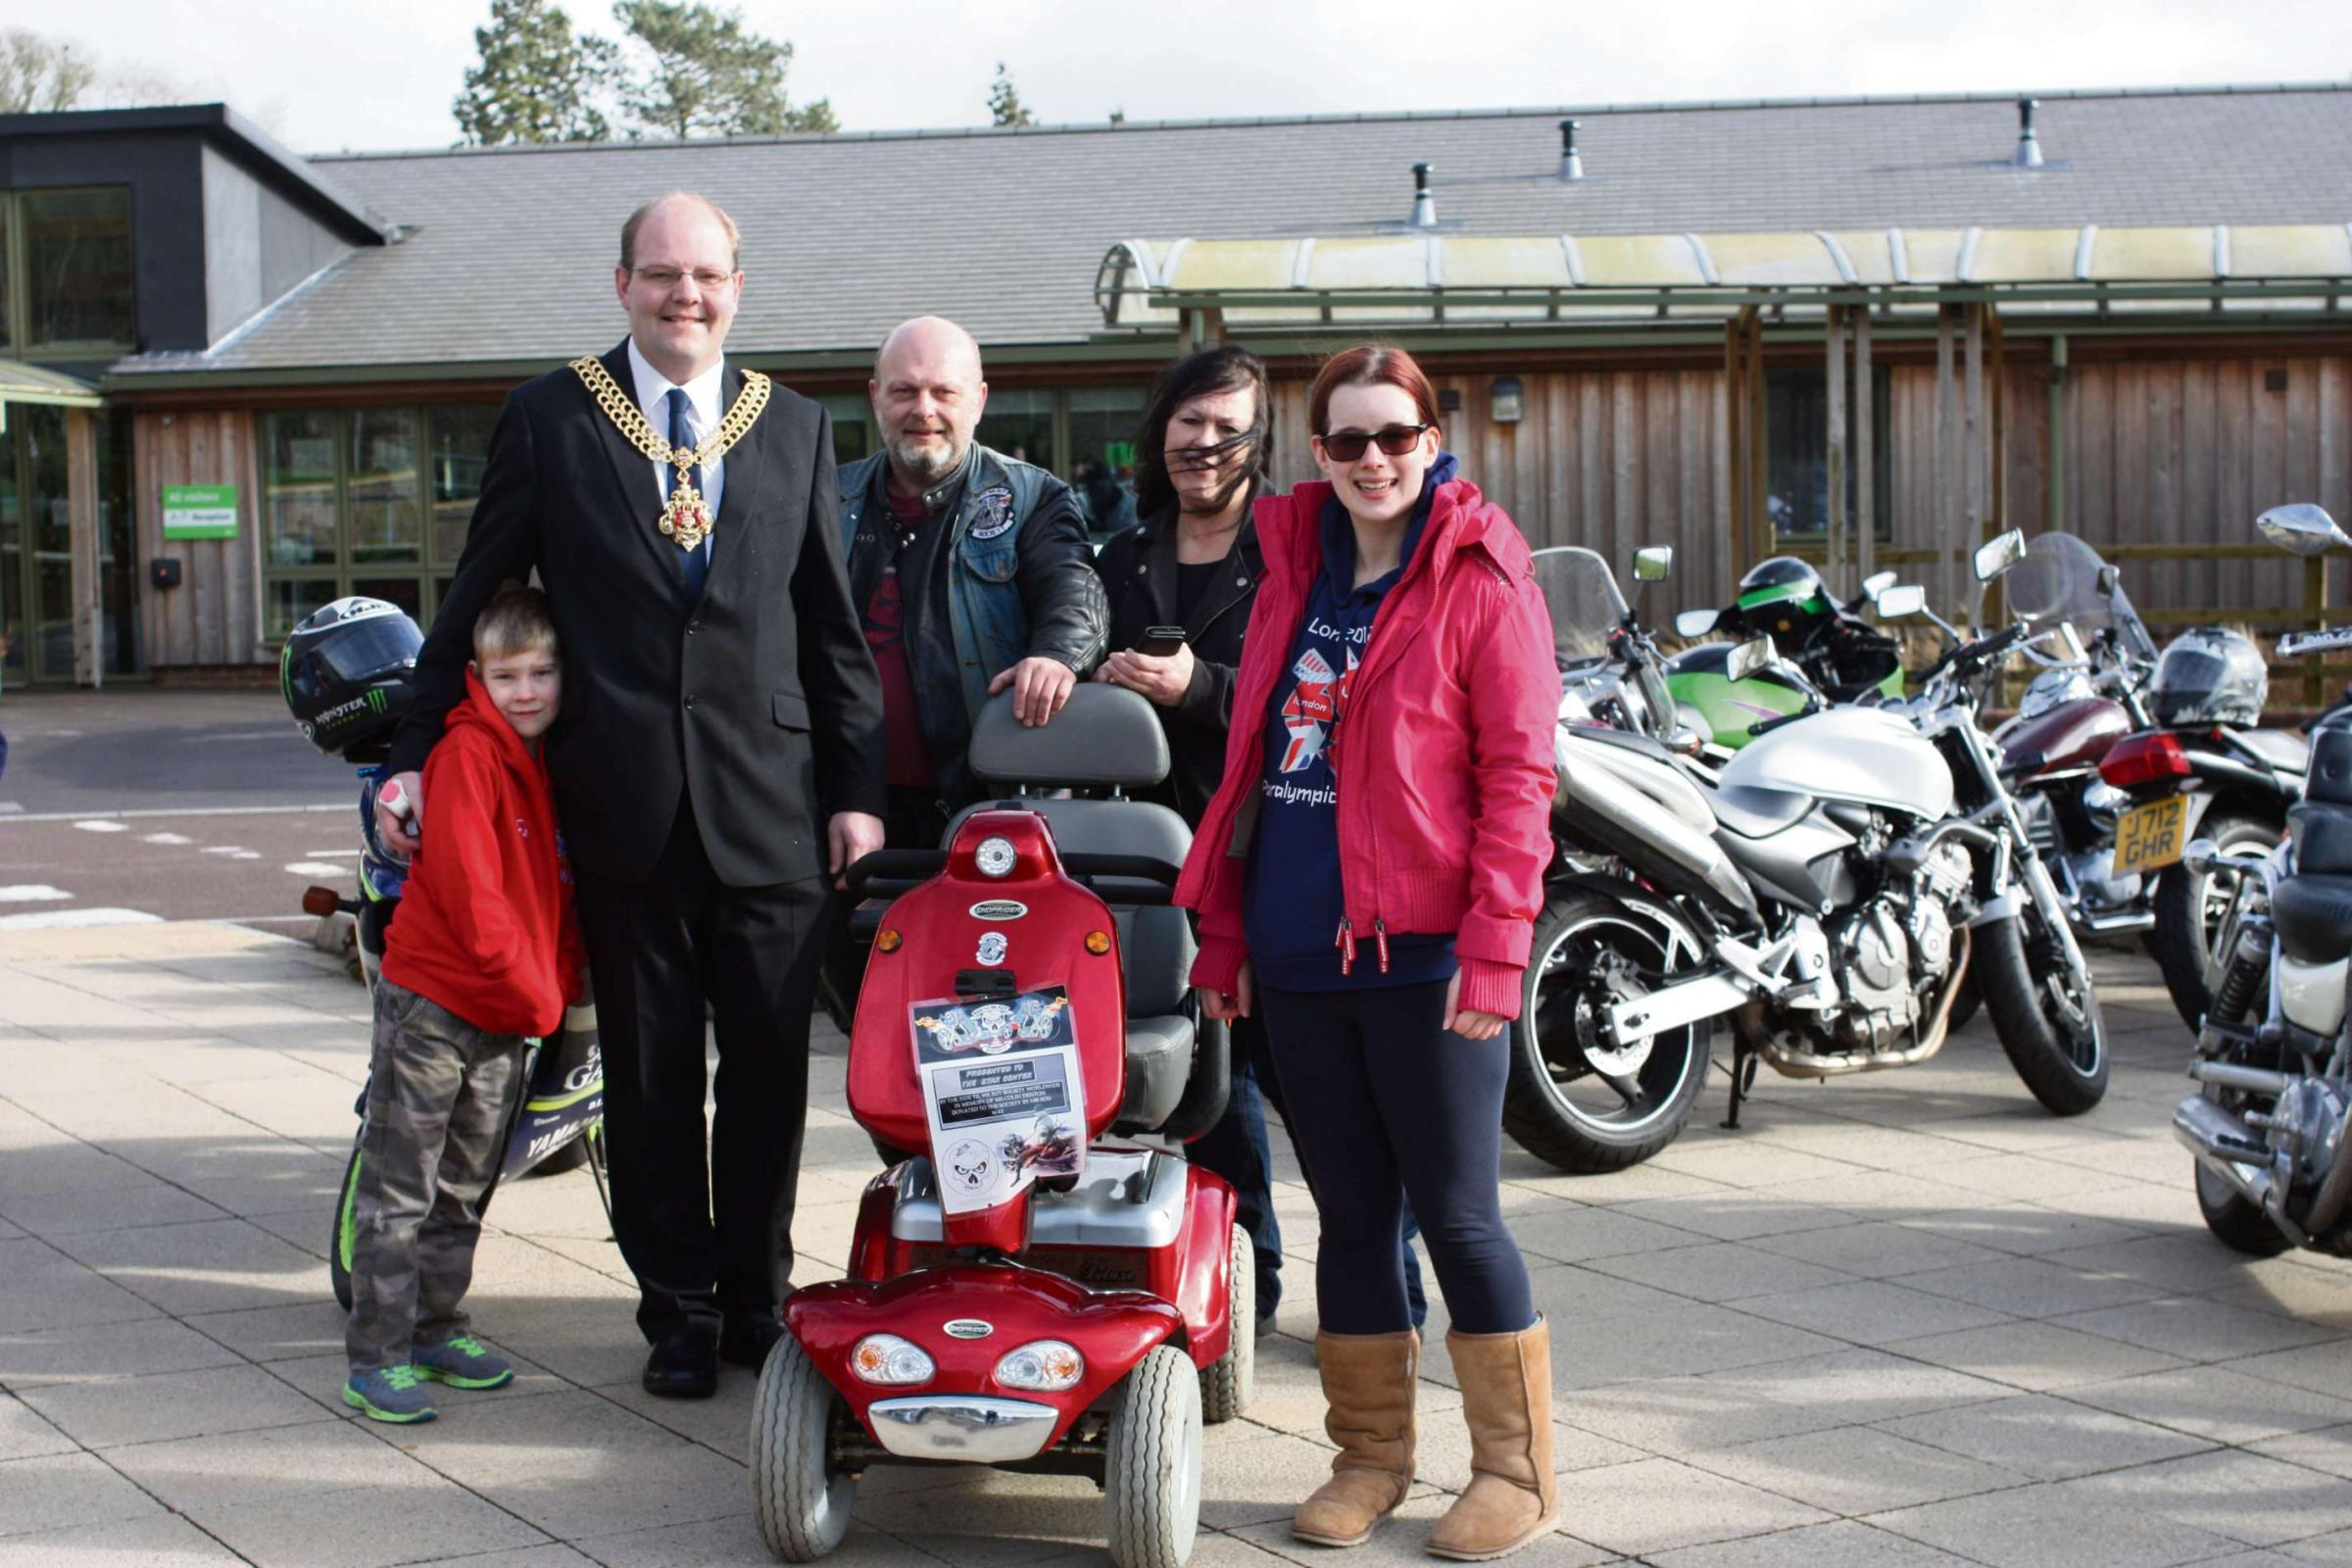 William Chatterton, Mayor of Gloucester Chris Chatterton, Mat Craddock, who donated the scooter to the college in me